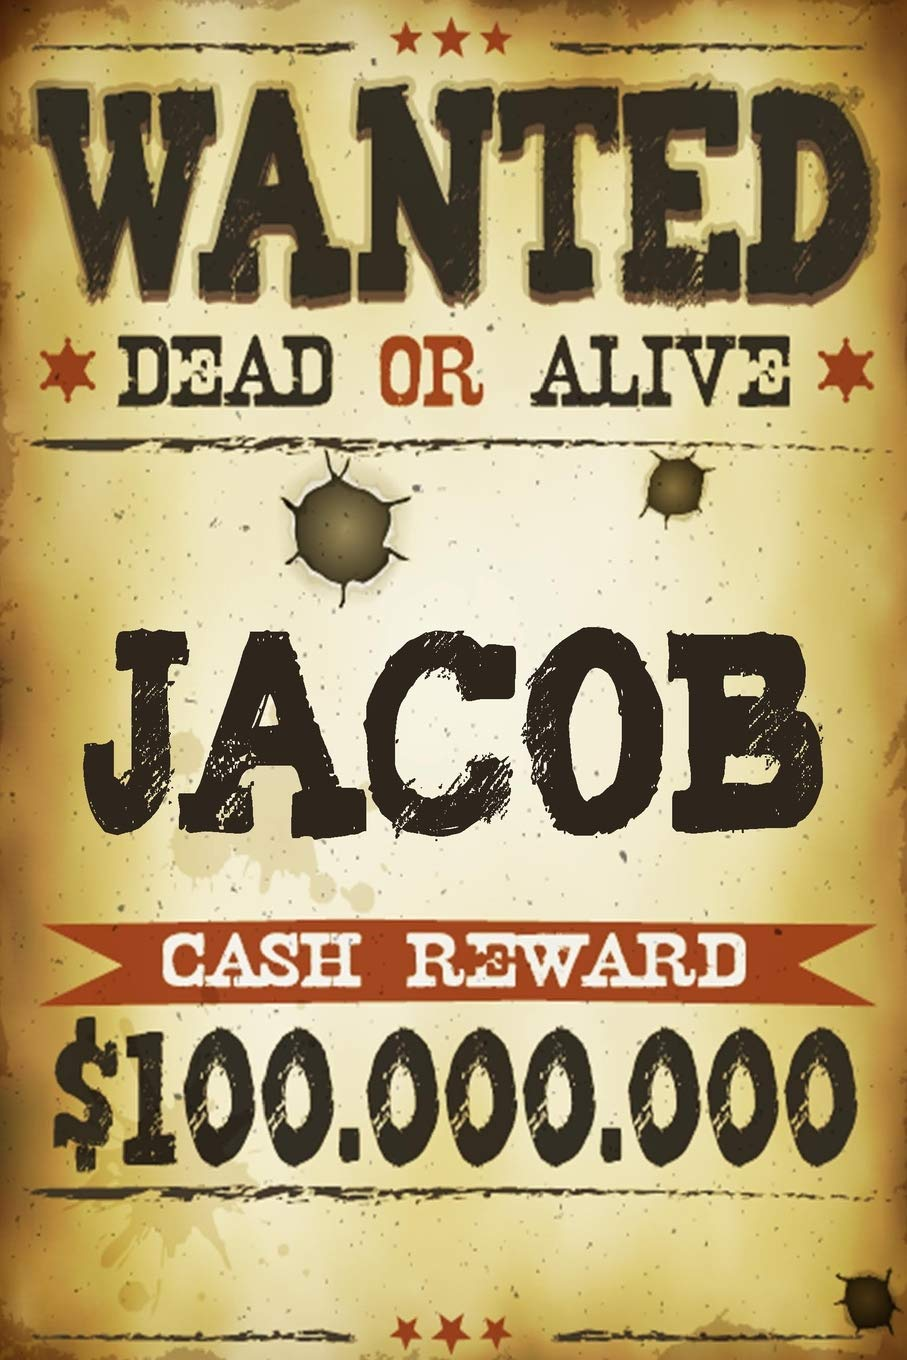 Amazon com: Jacob Wanted Dead Or Alive Cash Reward $100,000,000